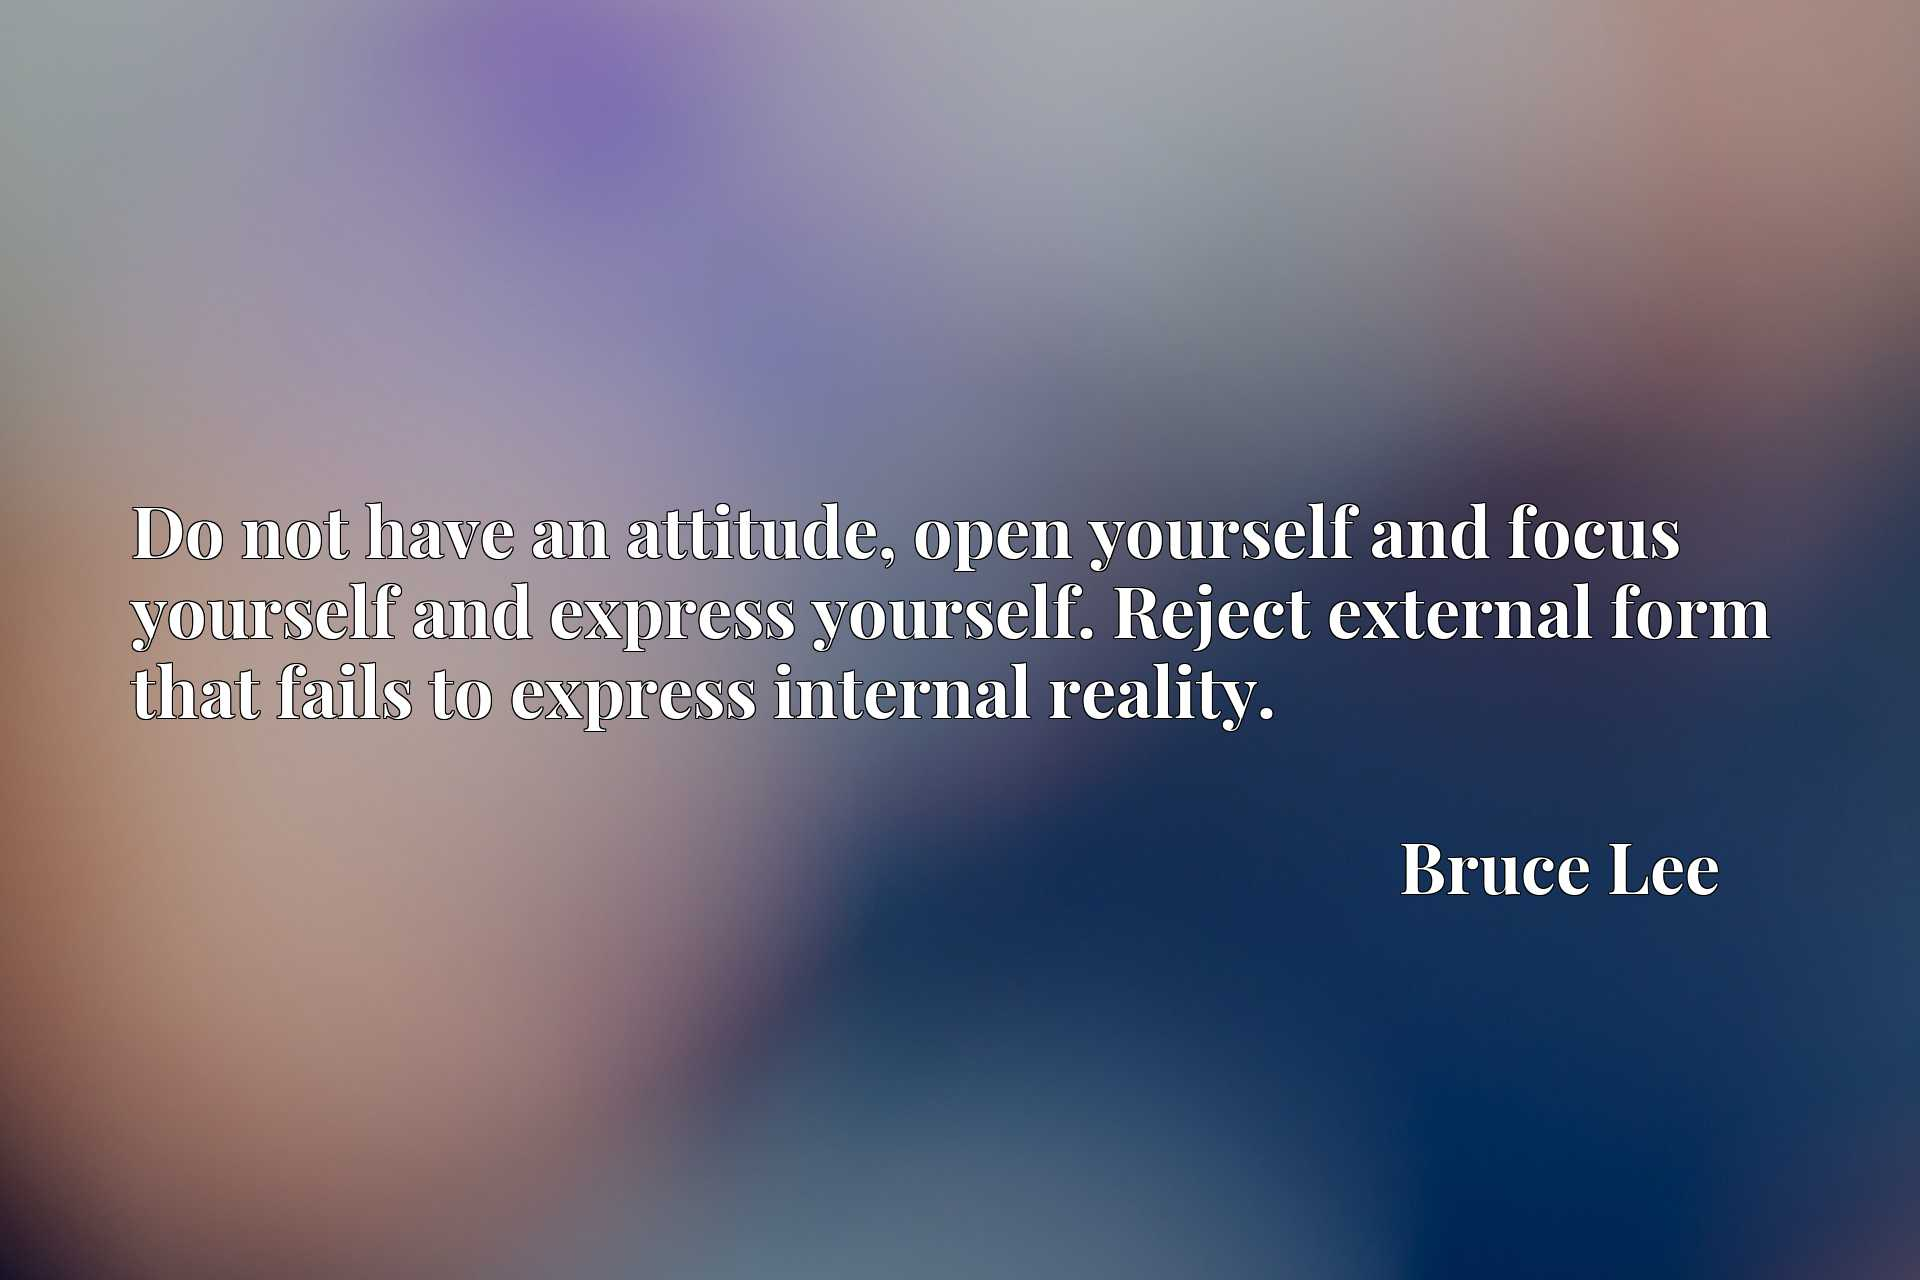 Do not have an attitude, open yourself and focus yourself and express yourself. Reject external form that fails to express internal reality.